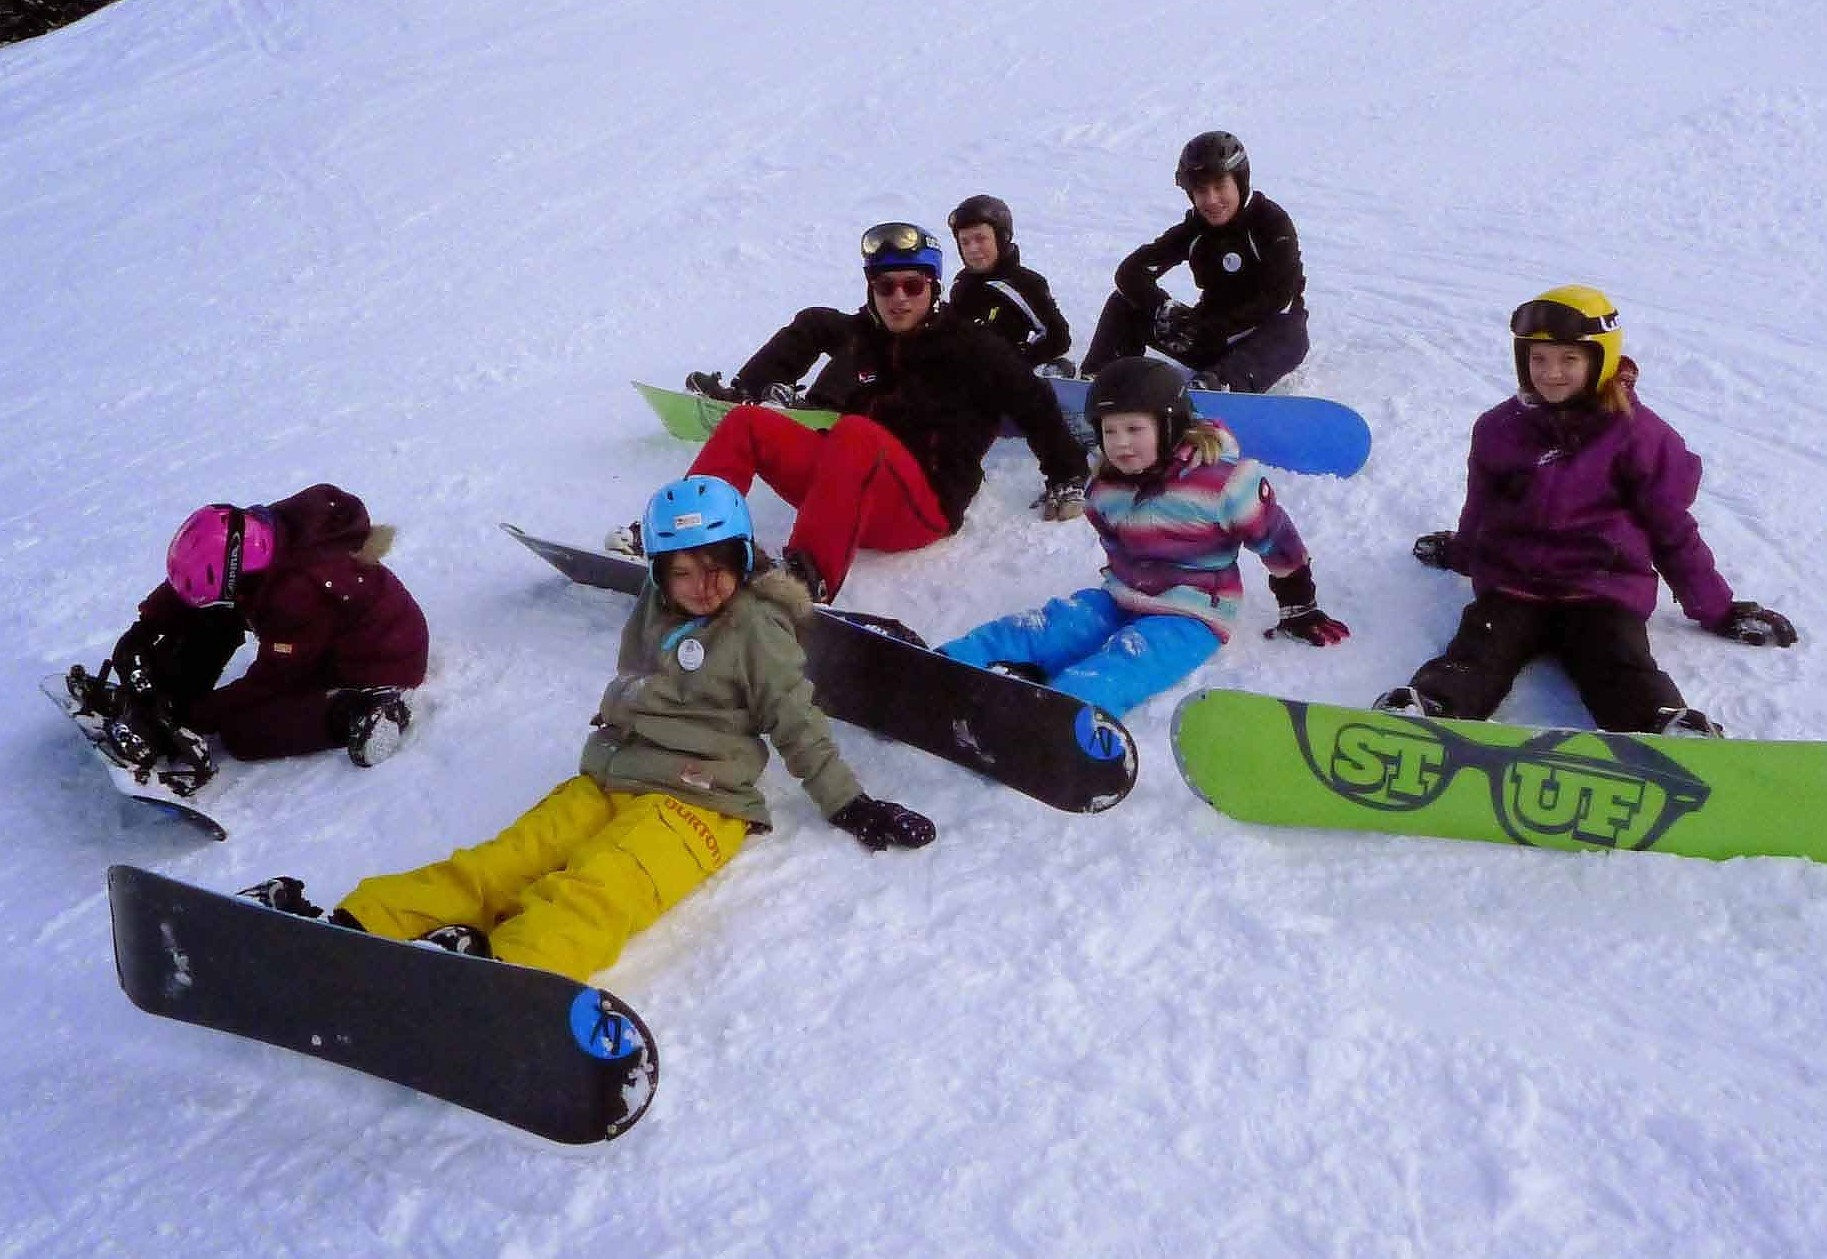 Group BEGINNER Snowboard-lessons 4 hours FULLDAY from 10:00-12:00 a.m., 1.00-3.00 p.m.